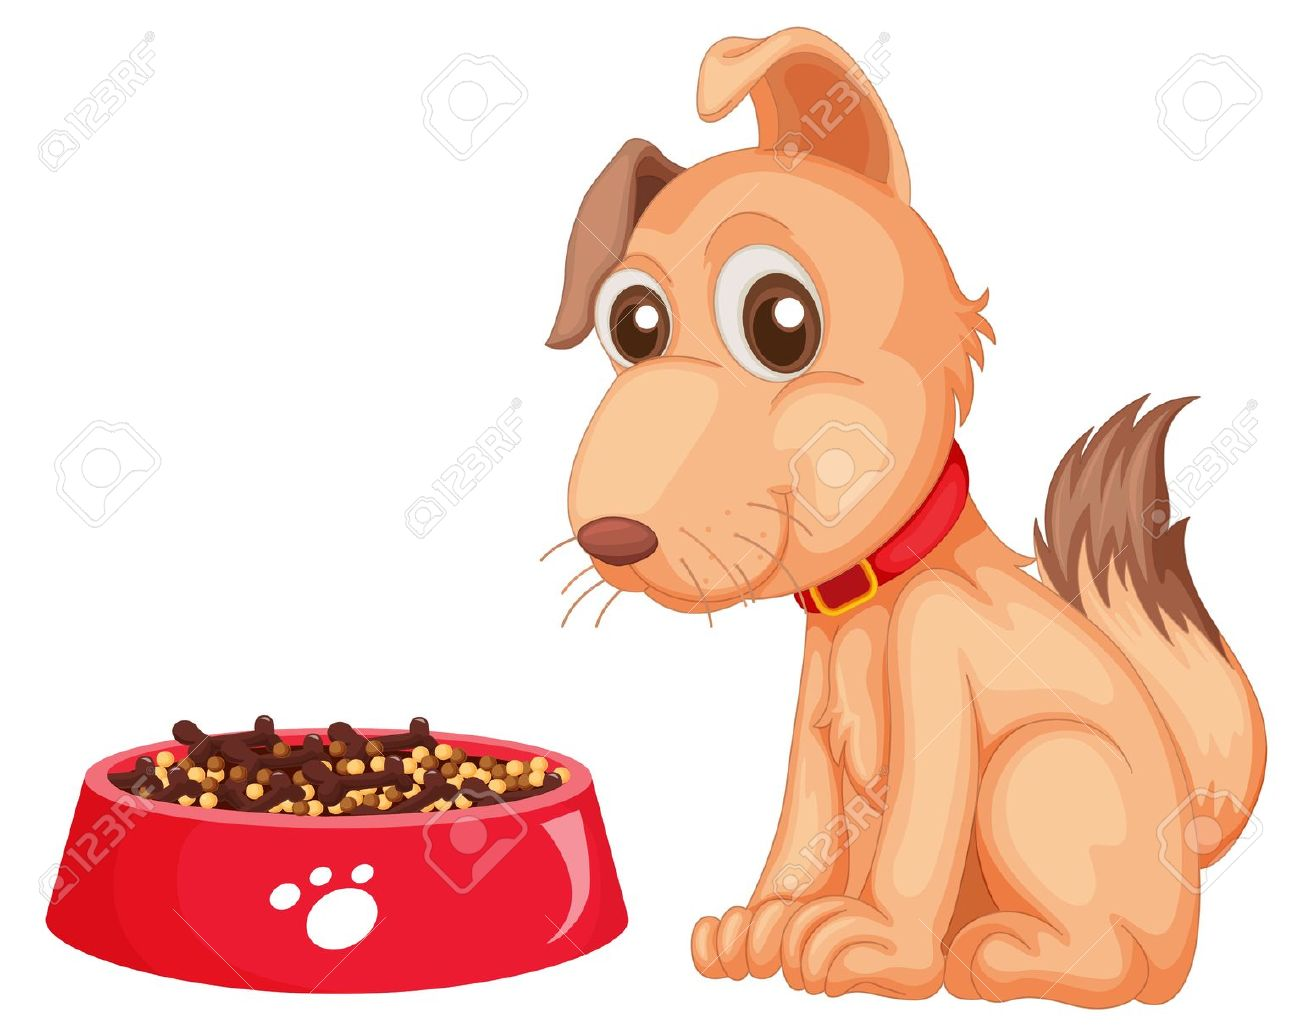 Feed the dog clipart picture black and white library Feed and water pets clipart - ClipartFox picture black and white library